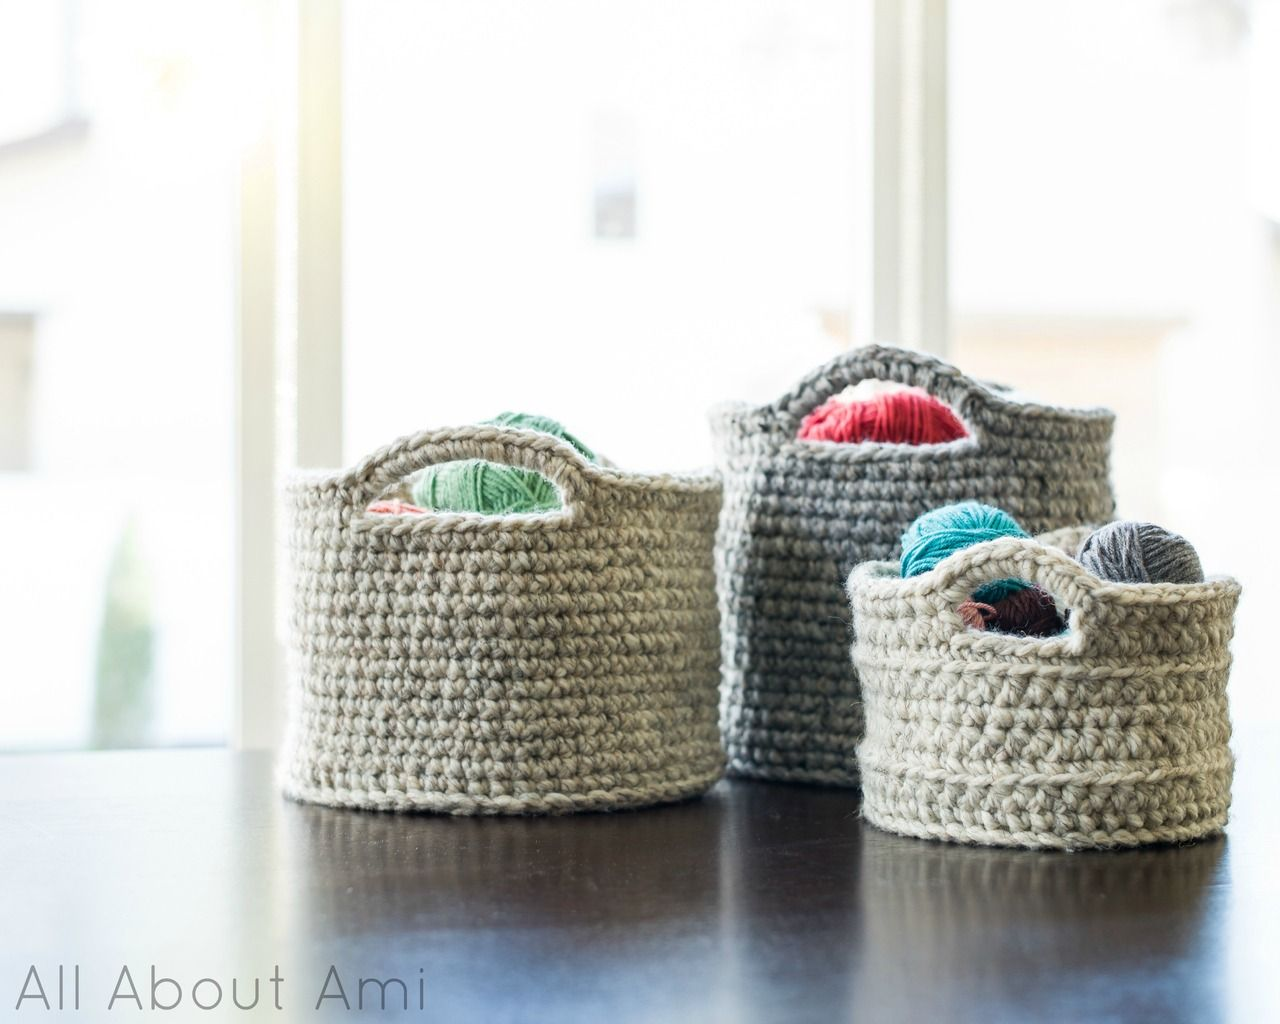 Family of Baskets | CROCHET YAY! | Croché, Ganchillo, Ganchillo crochet